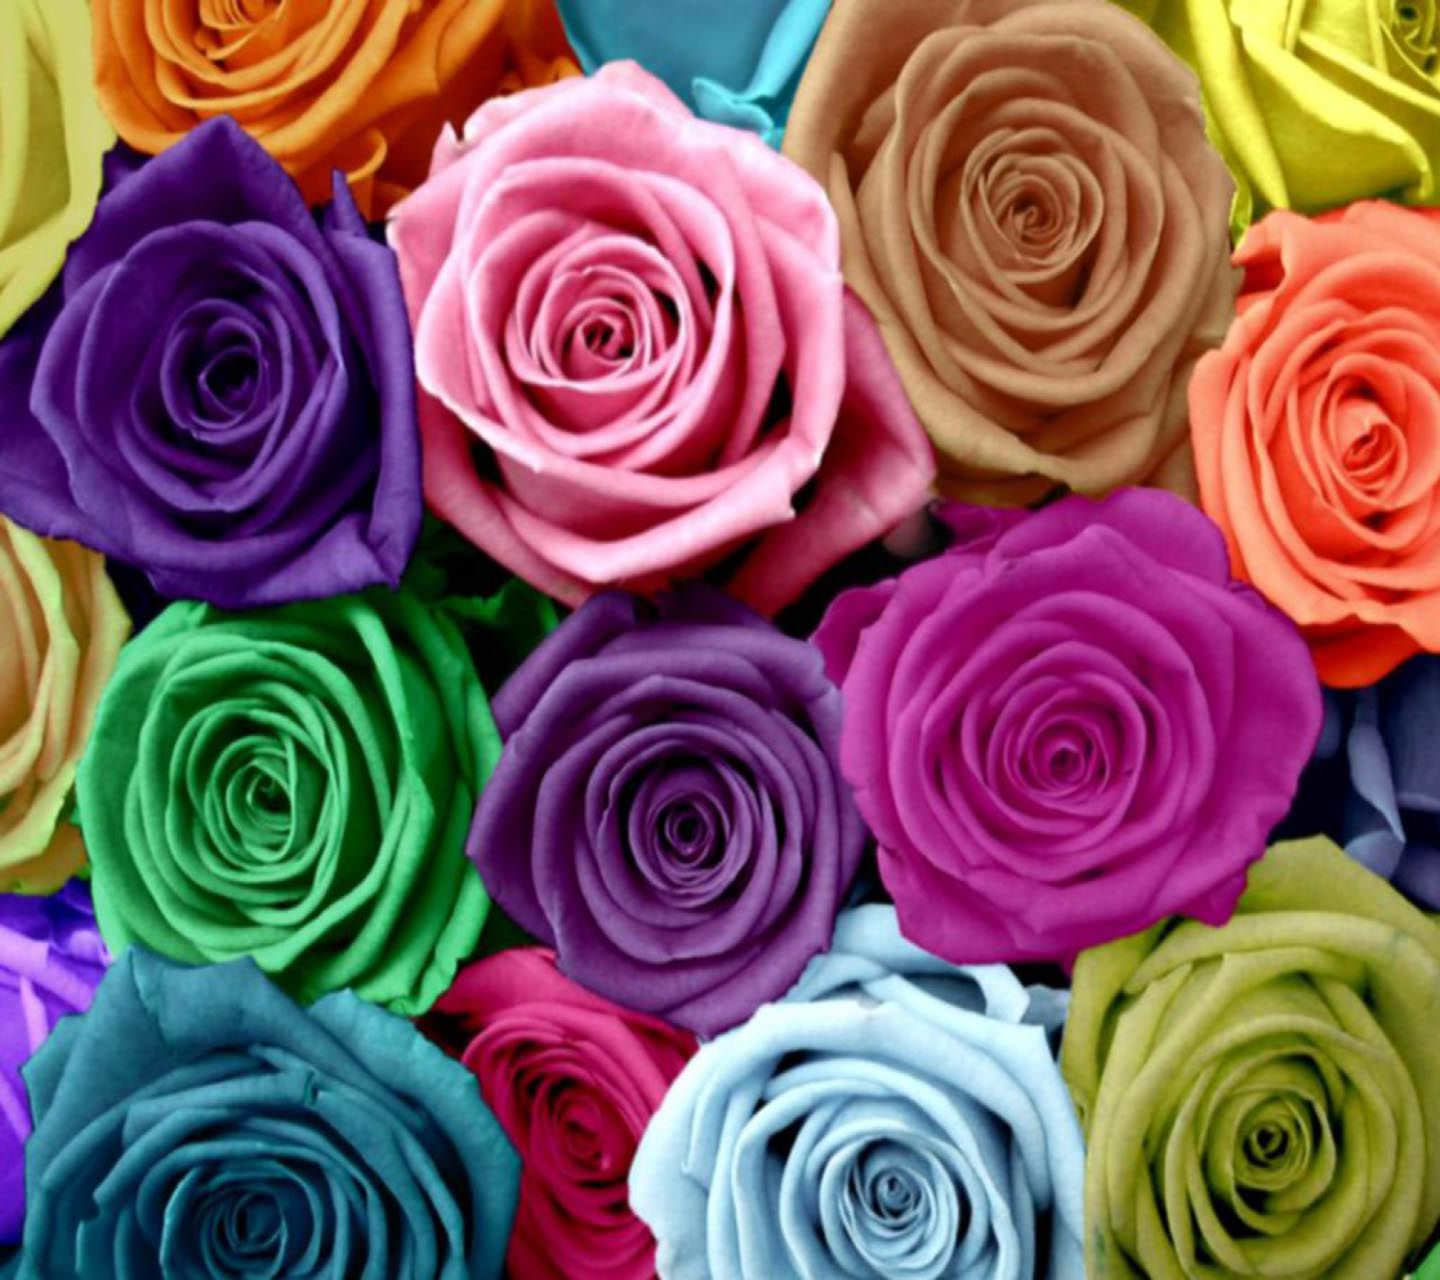 High resolution Colorful Roses Wallpaper